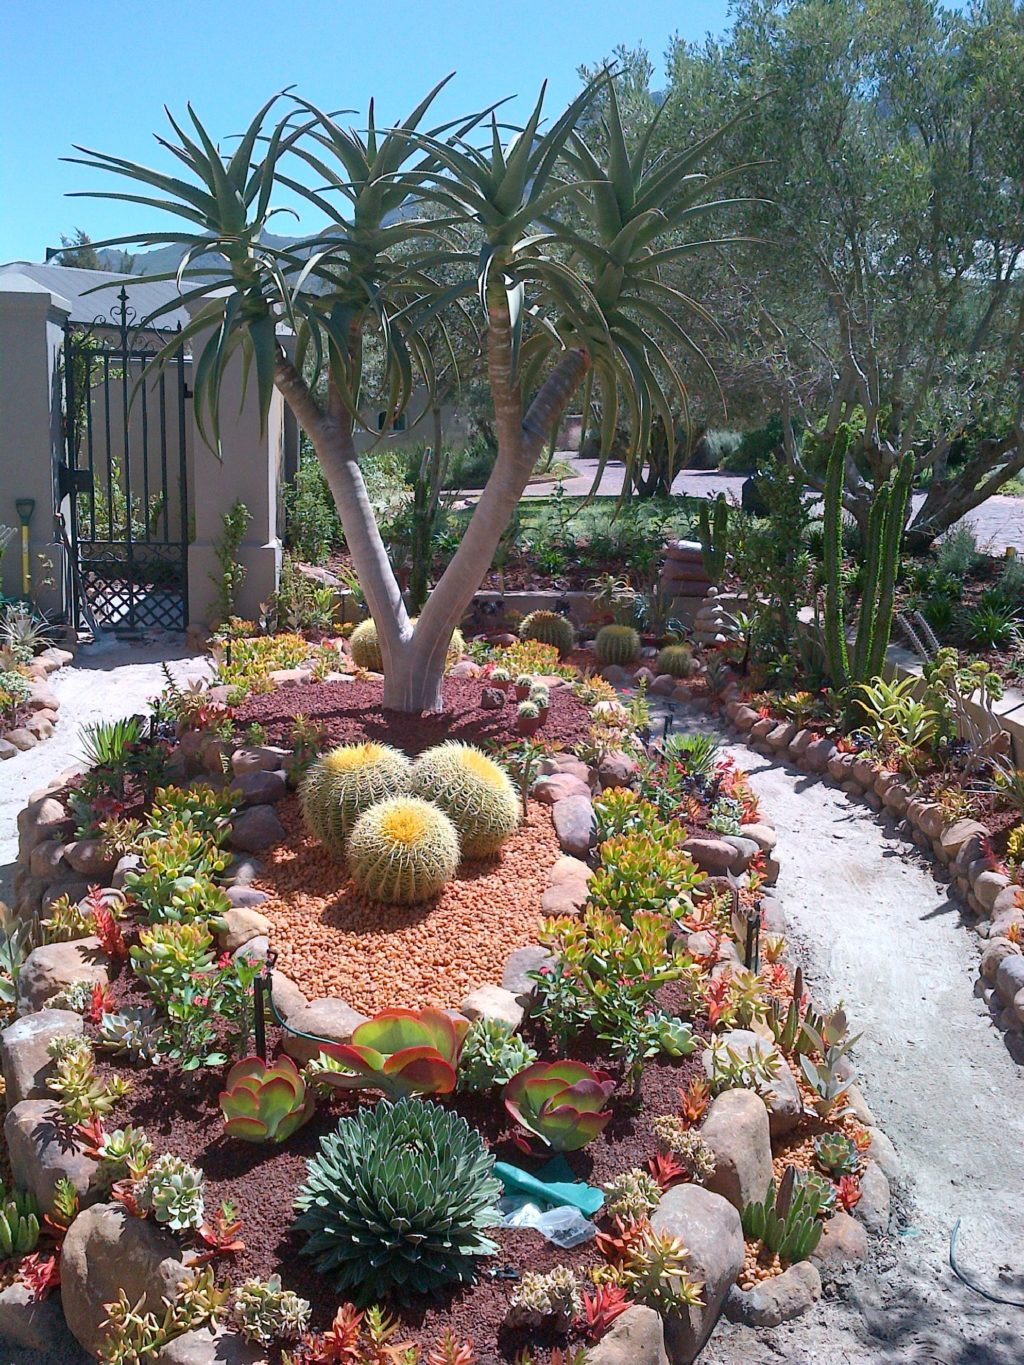 Best ideas about Desert Garden Ideas . Save or Pin Get the Oasis for Your Home with These Amazing Desert Now.